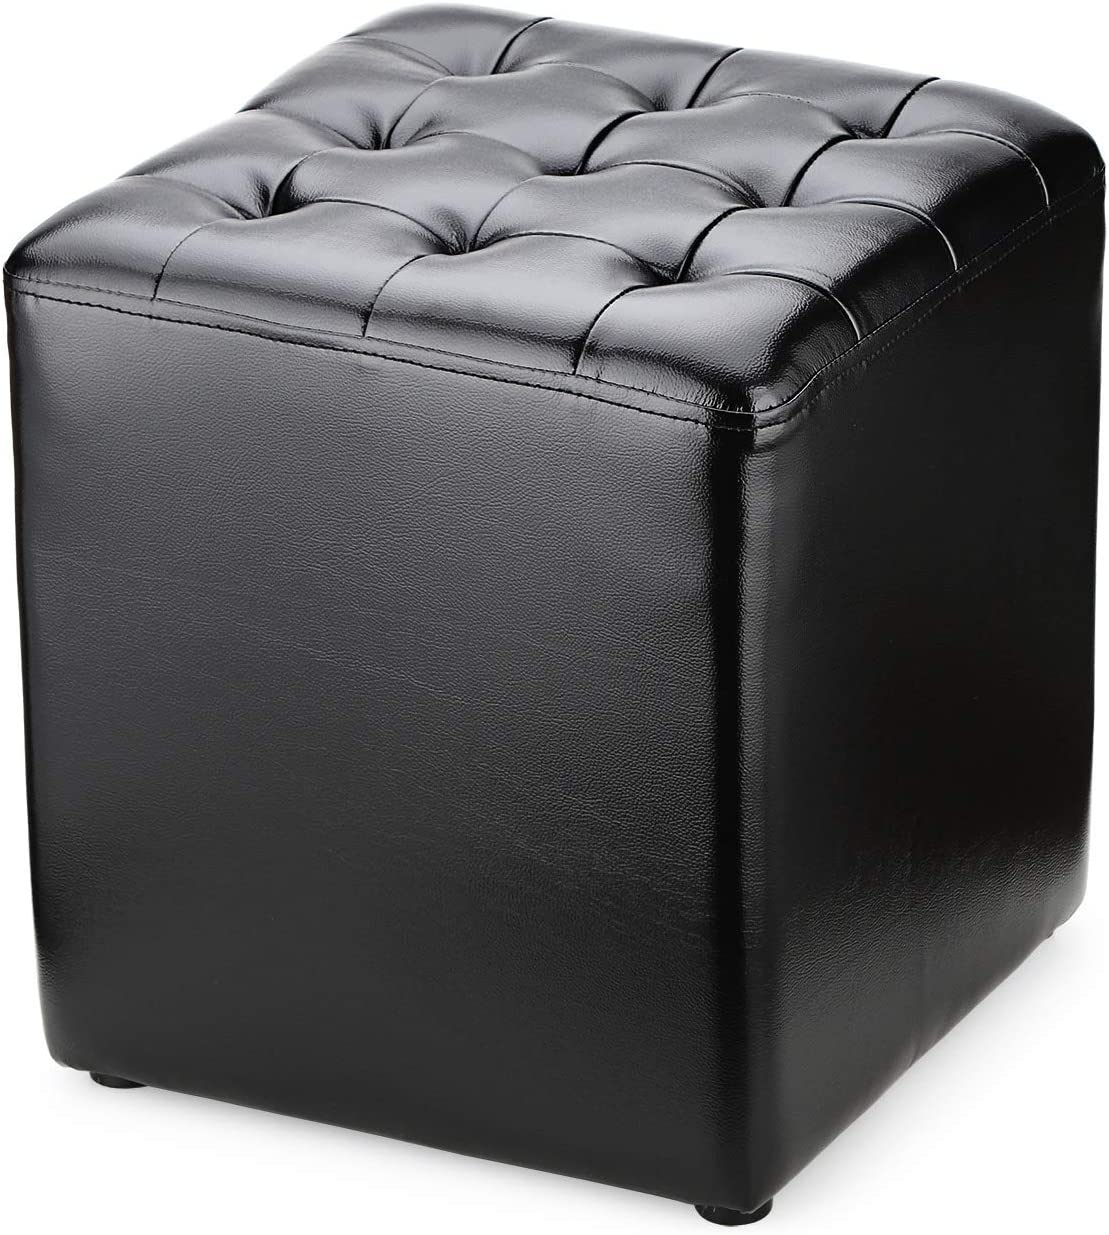 BILEEDA Small Leather Ottoman Foot Stools and Ottomans Foot Rest Stool Square Cube Black